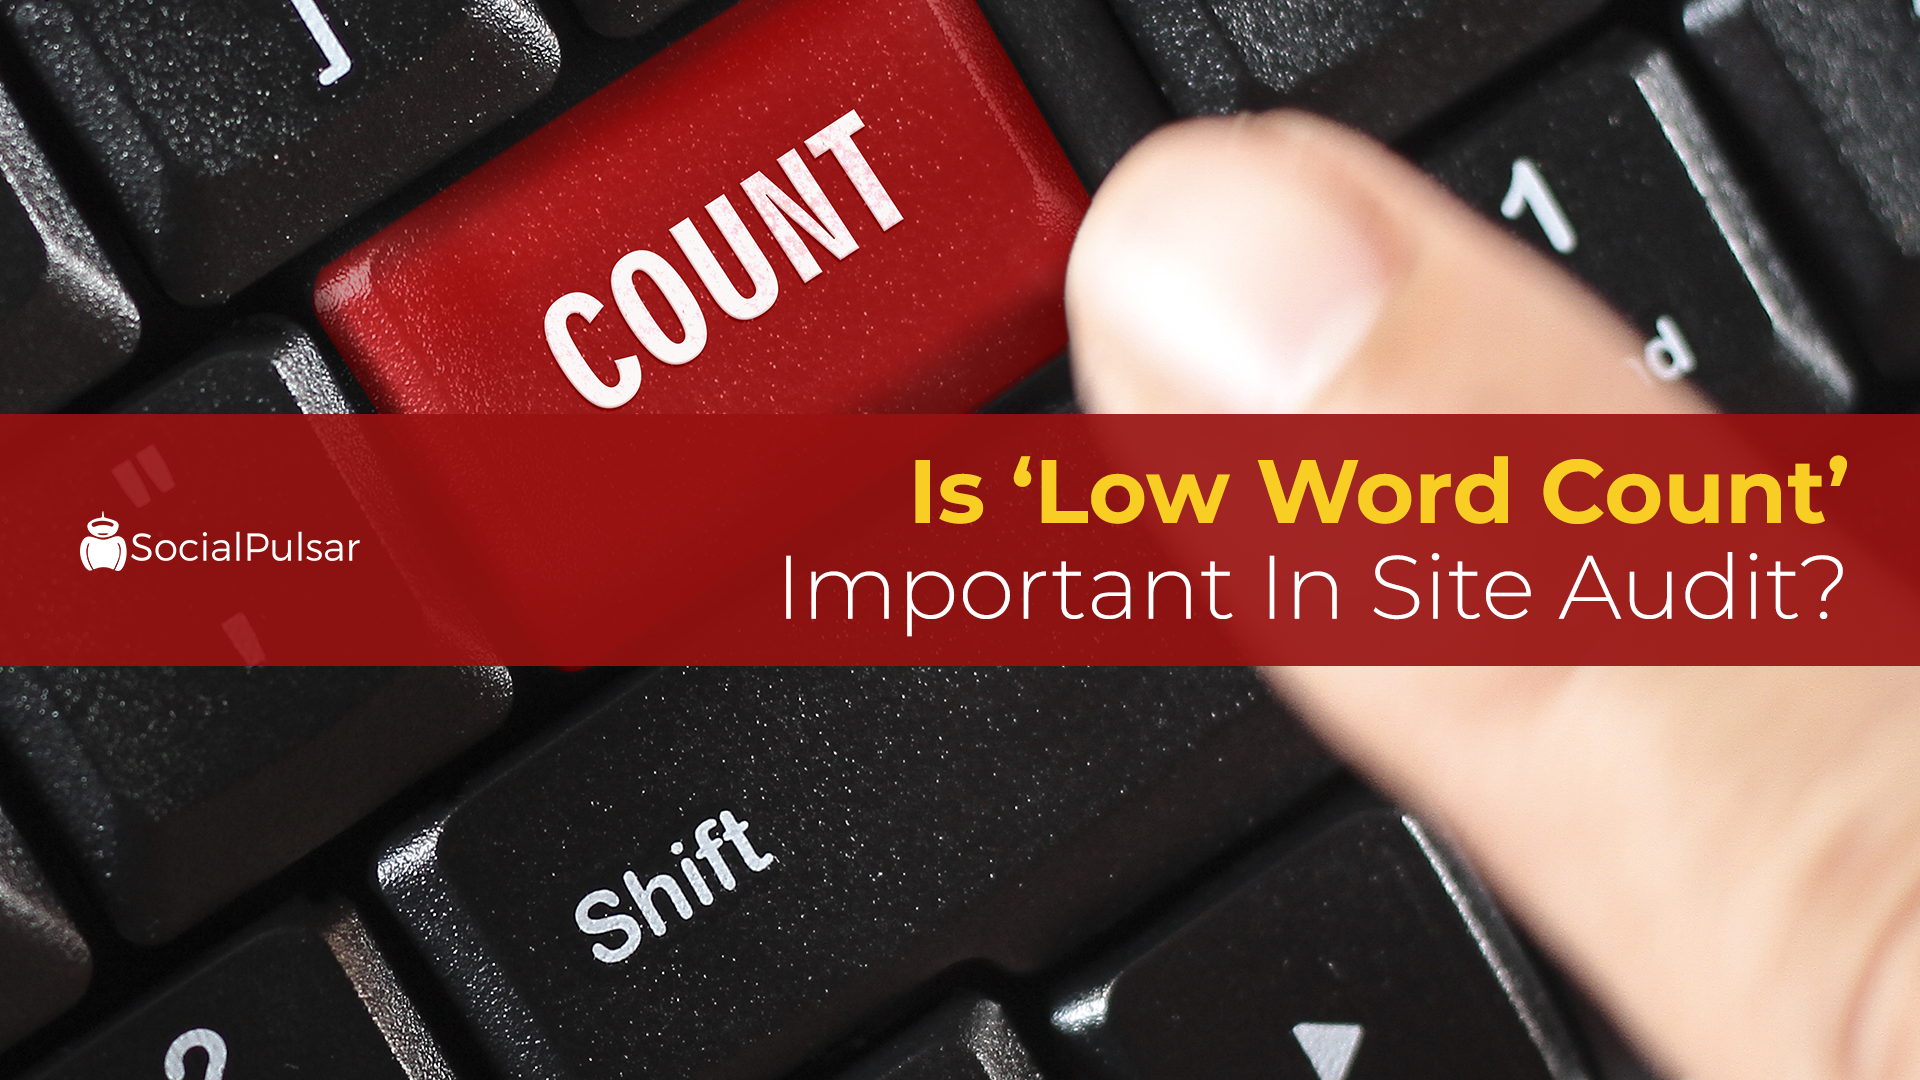 Is 'Low Word Count' Important in Site Audit?